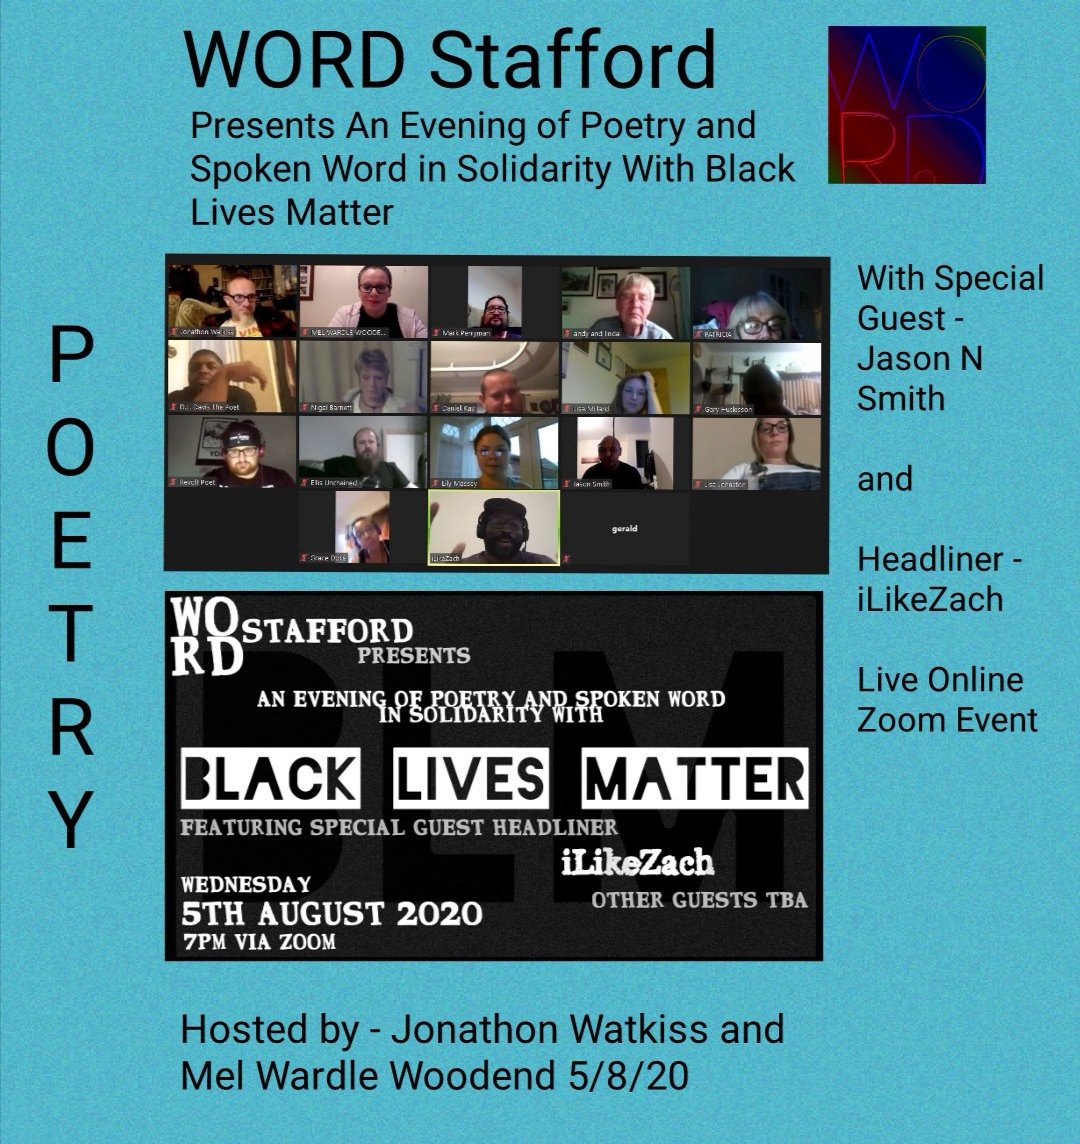 Our spoken word night, in solidarity with Black Lives Matter, was well supported with a thought provoking talk from special guest Jason Nicholas Smith @wordsmith212 and a powerful headline set from iLikeZach  #WORDStafford #spokenword #poetry #zoomonlinepoetryeventspic.twitter.com/m7o6peHeEH